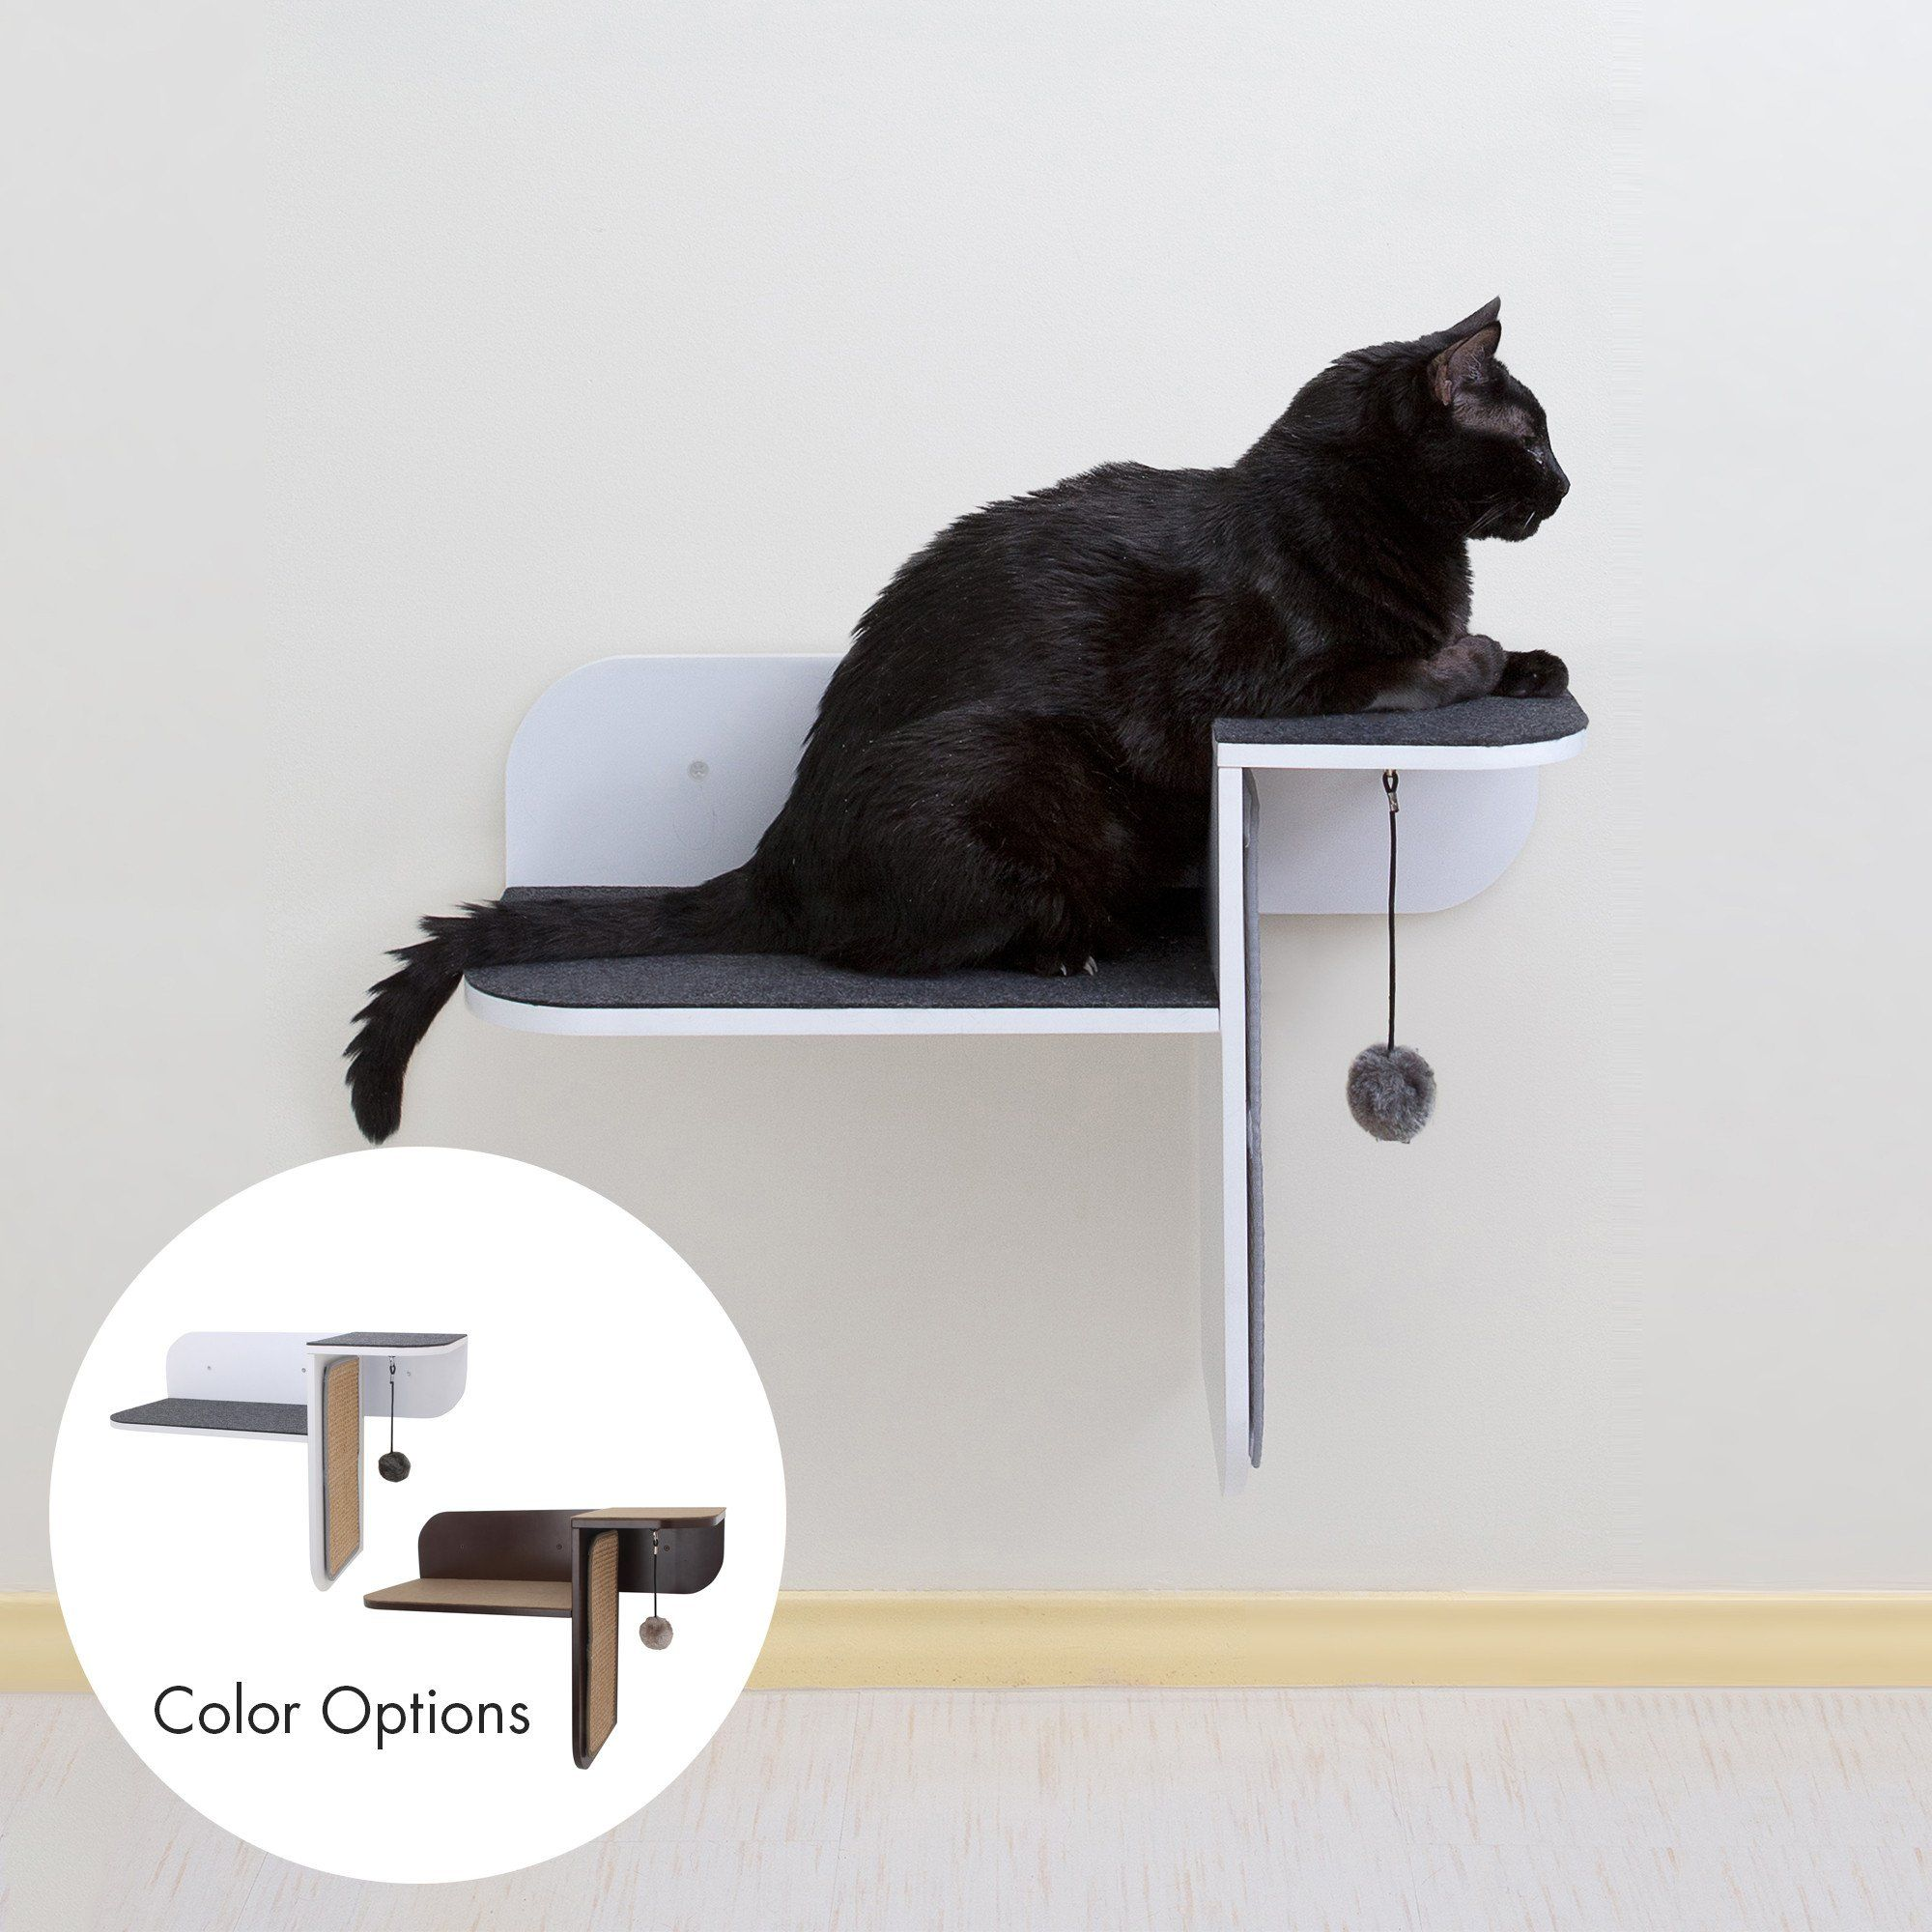 Step Perch Wallmounted Cat Perch, Scratcher & Lounge by